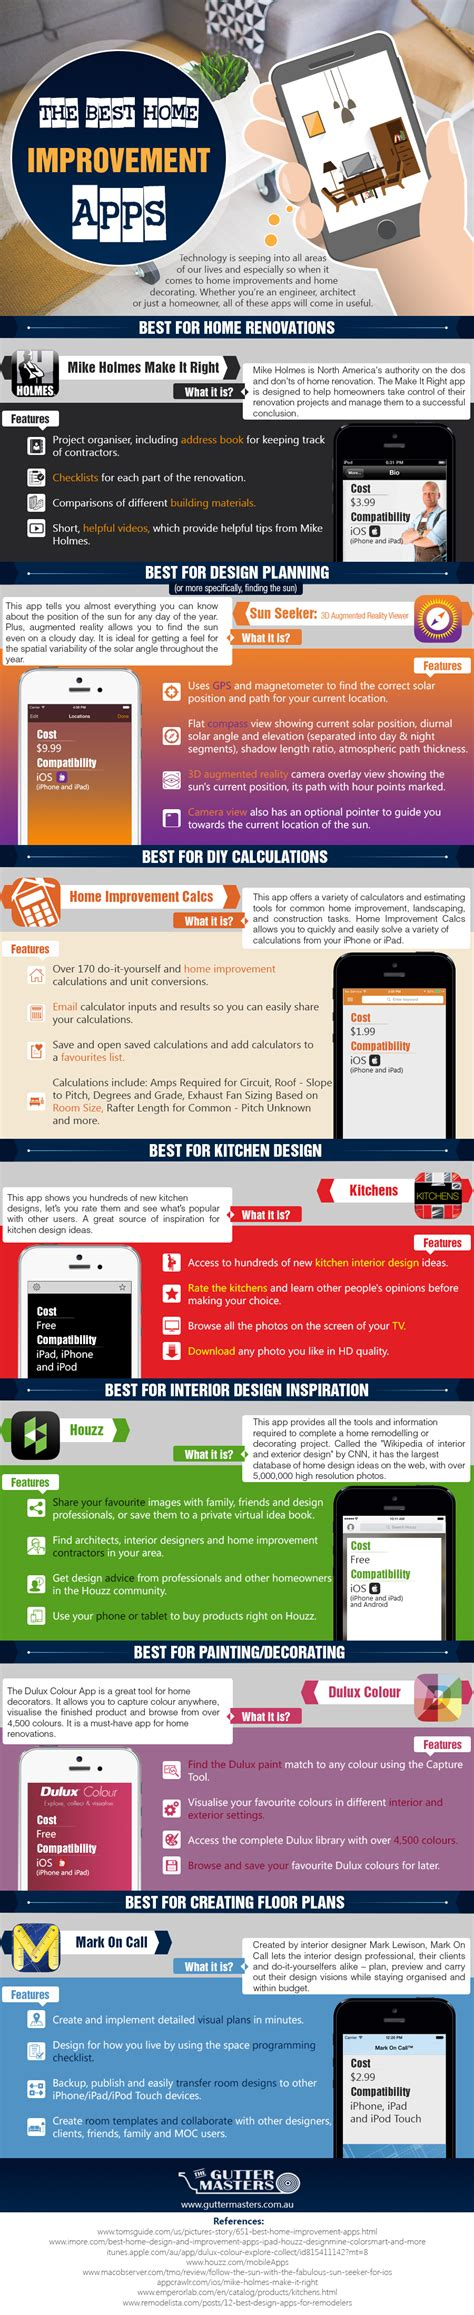 apps to help with home renovation infographic best home improvement apps infographic designer mag